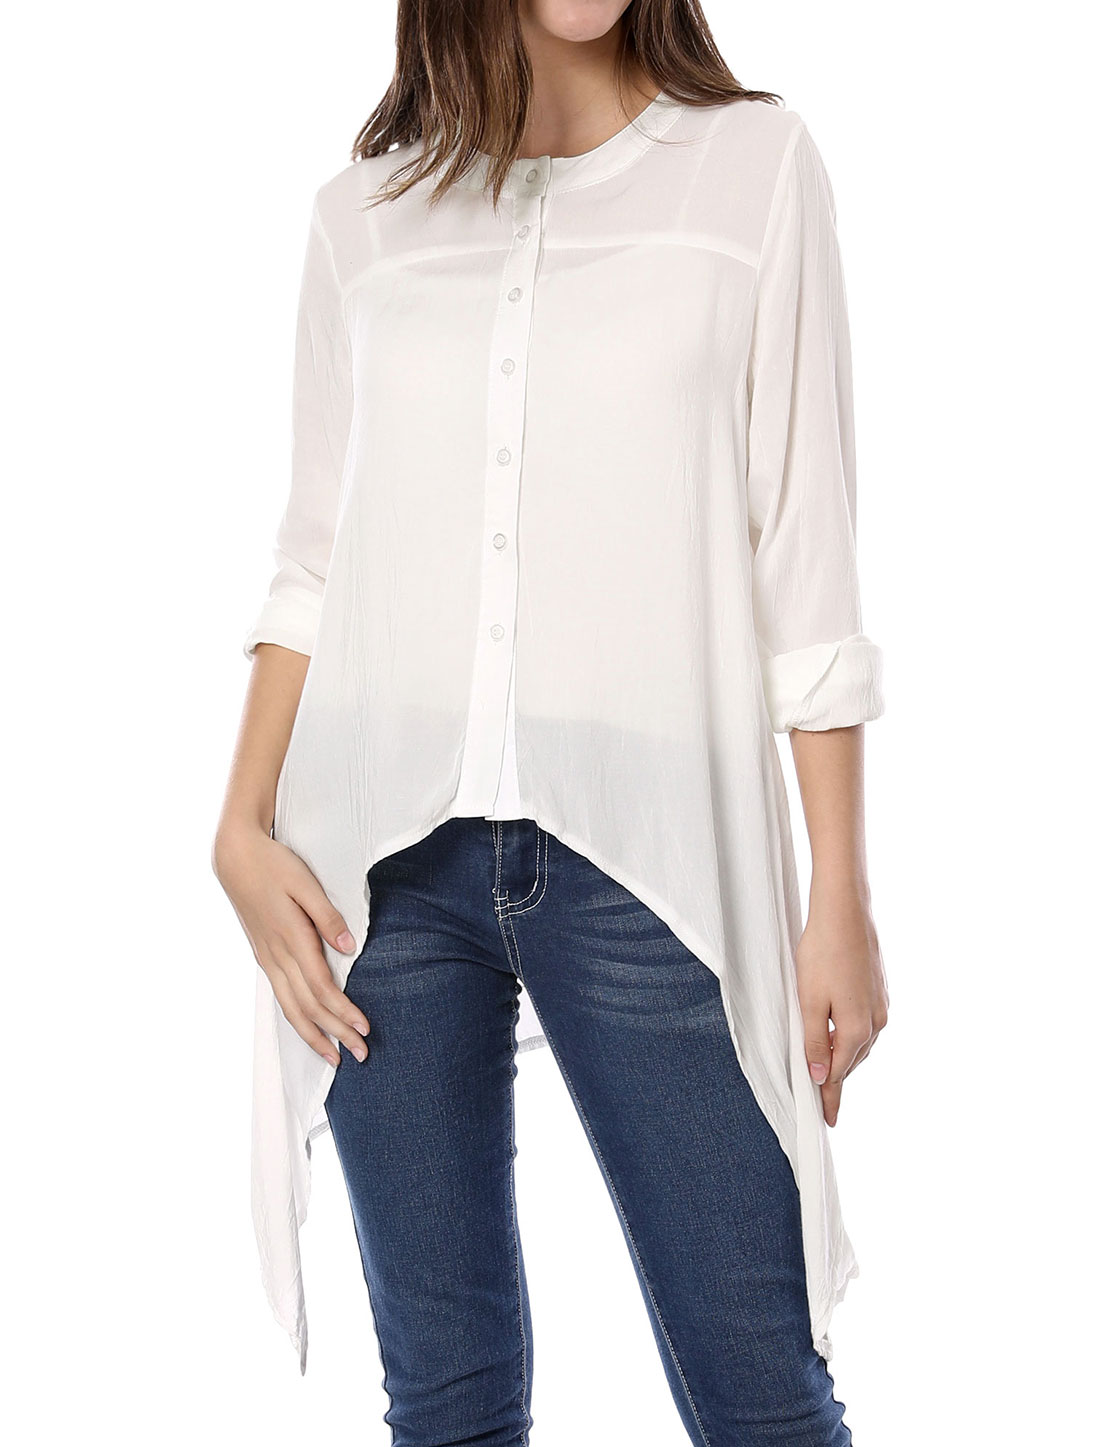 Lady Stylish Pure Off White Asymmetric Hem Design Casual Blouse XL